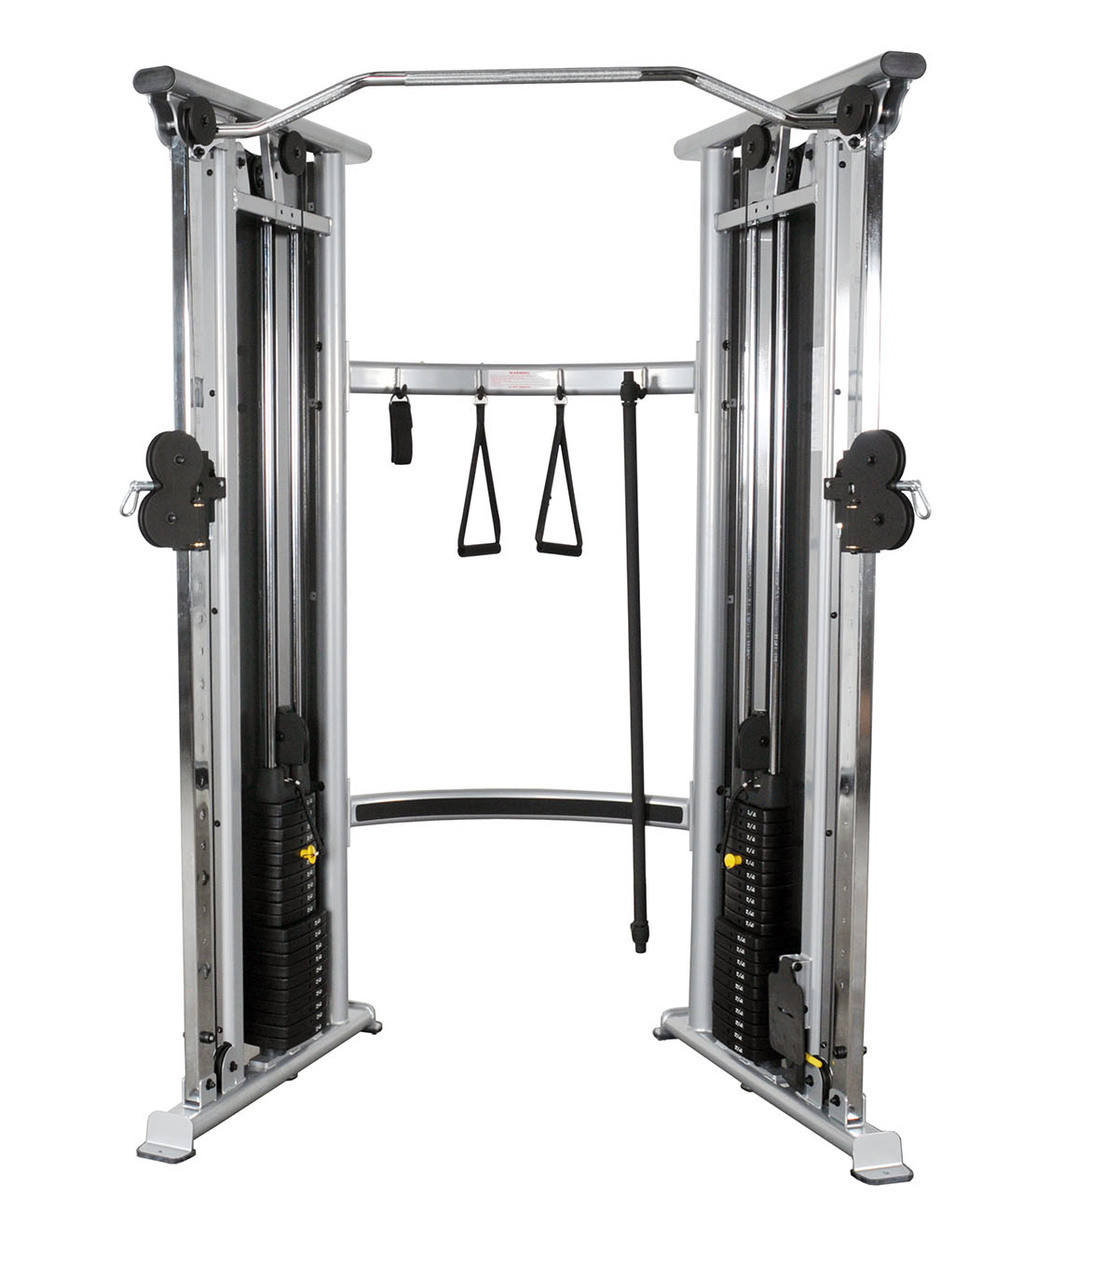 Inflight 2-stack functional trainer with 4:1 weight ratio kit